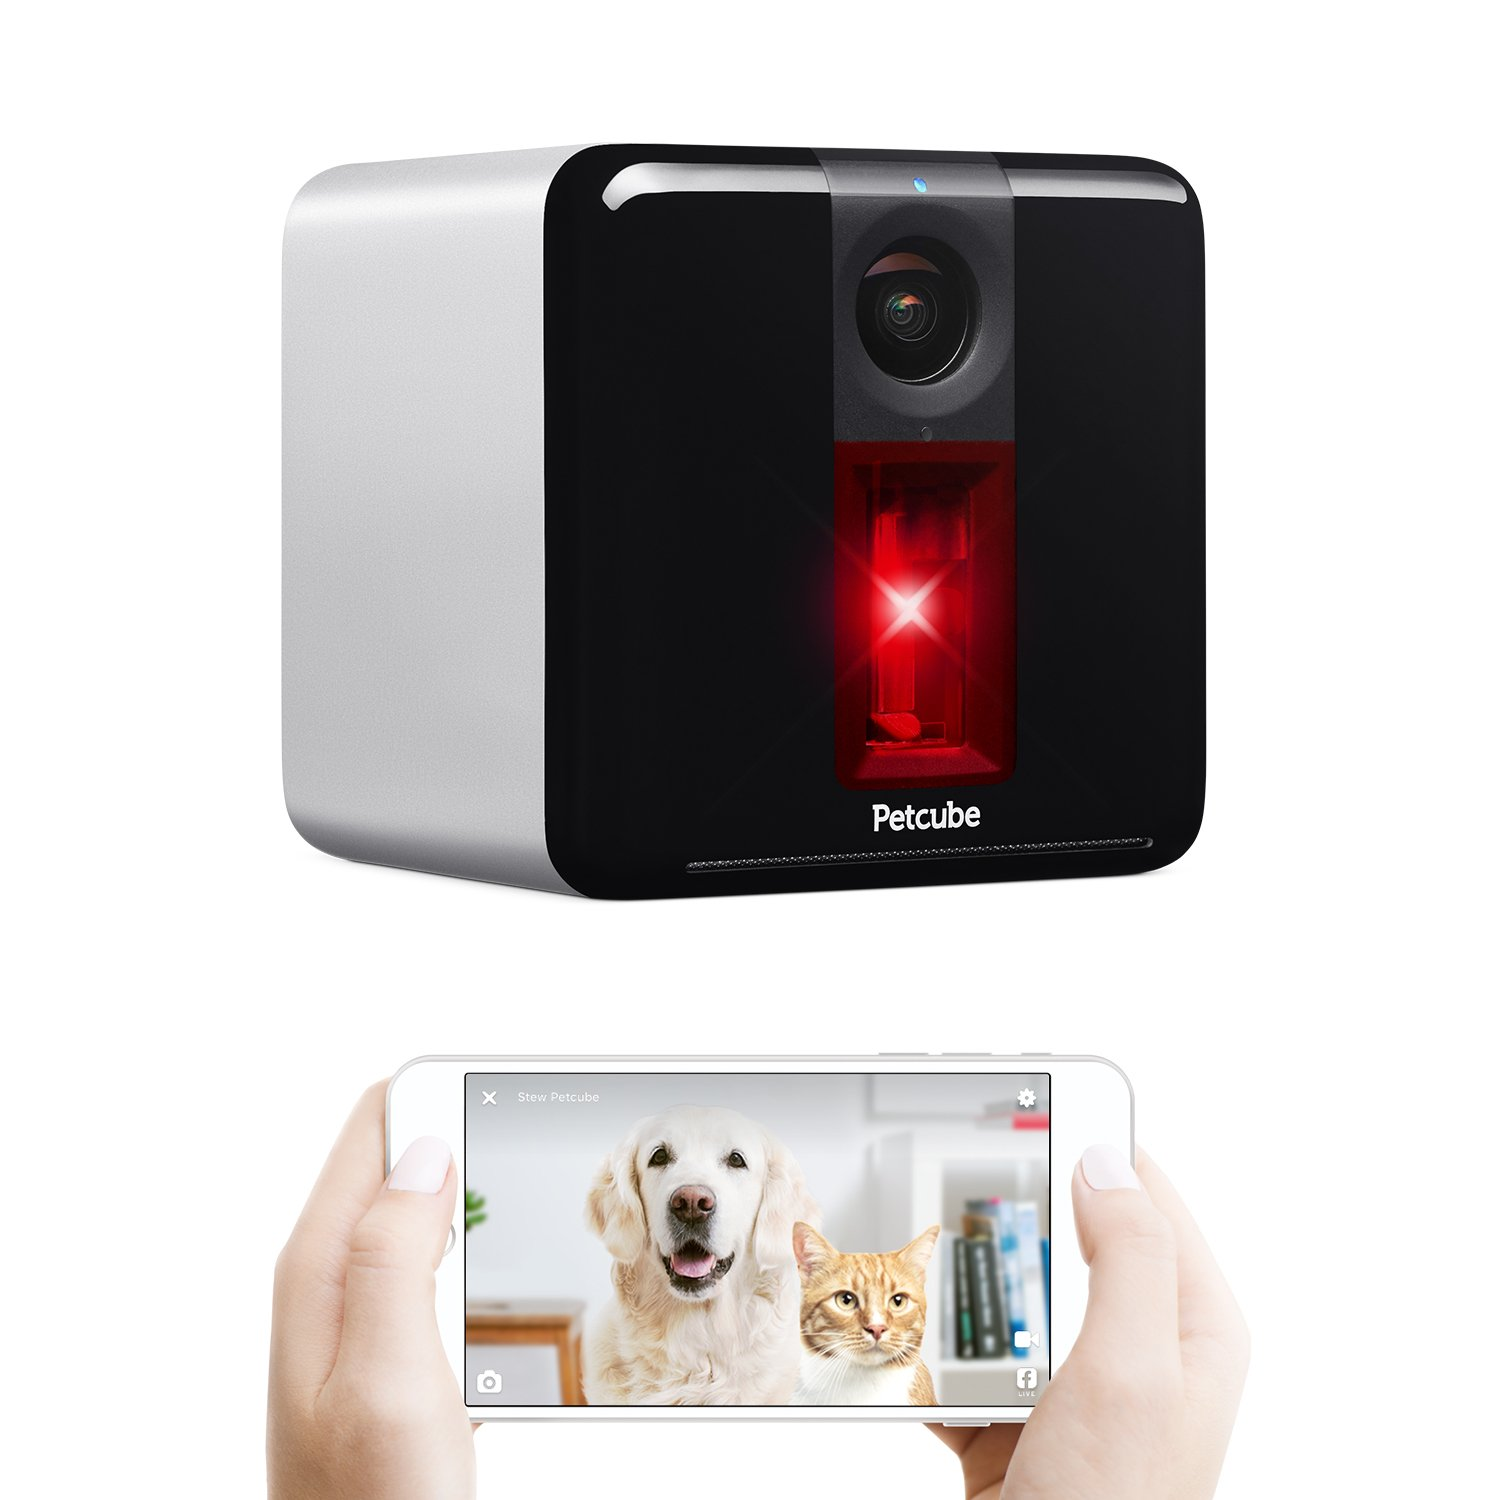 Petcube Play Wi-Fi Pet Camera: HD 1080p Video, 2-Way Audio, Night Vision and Interactive Laser Toy. Video Camera to Monitor Your Dog or Cat with Sound and Motion Alerts (As seen on TODAY & Ellen)